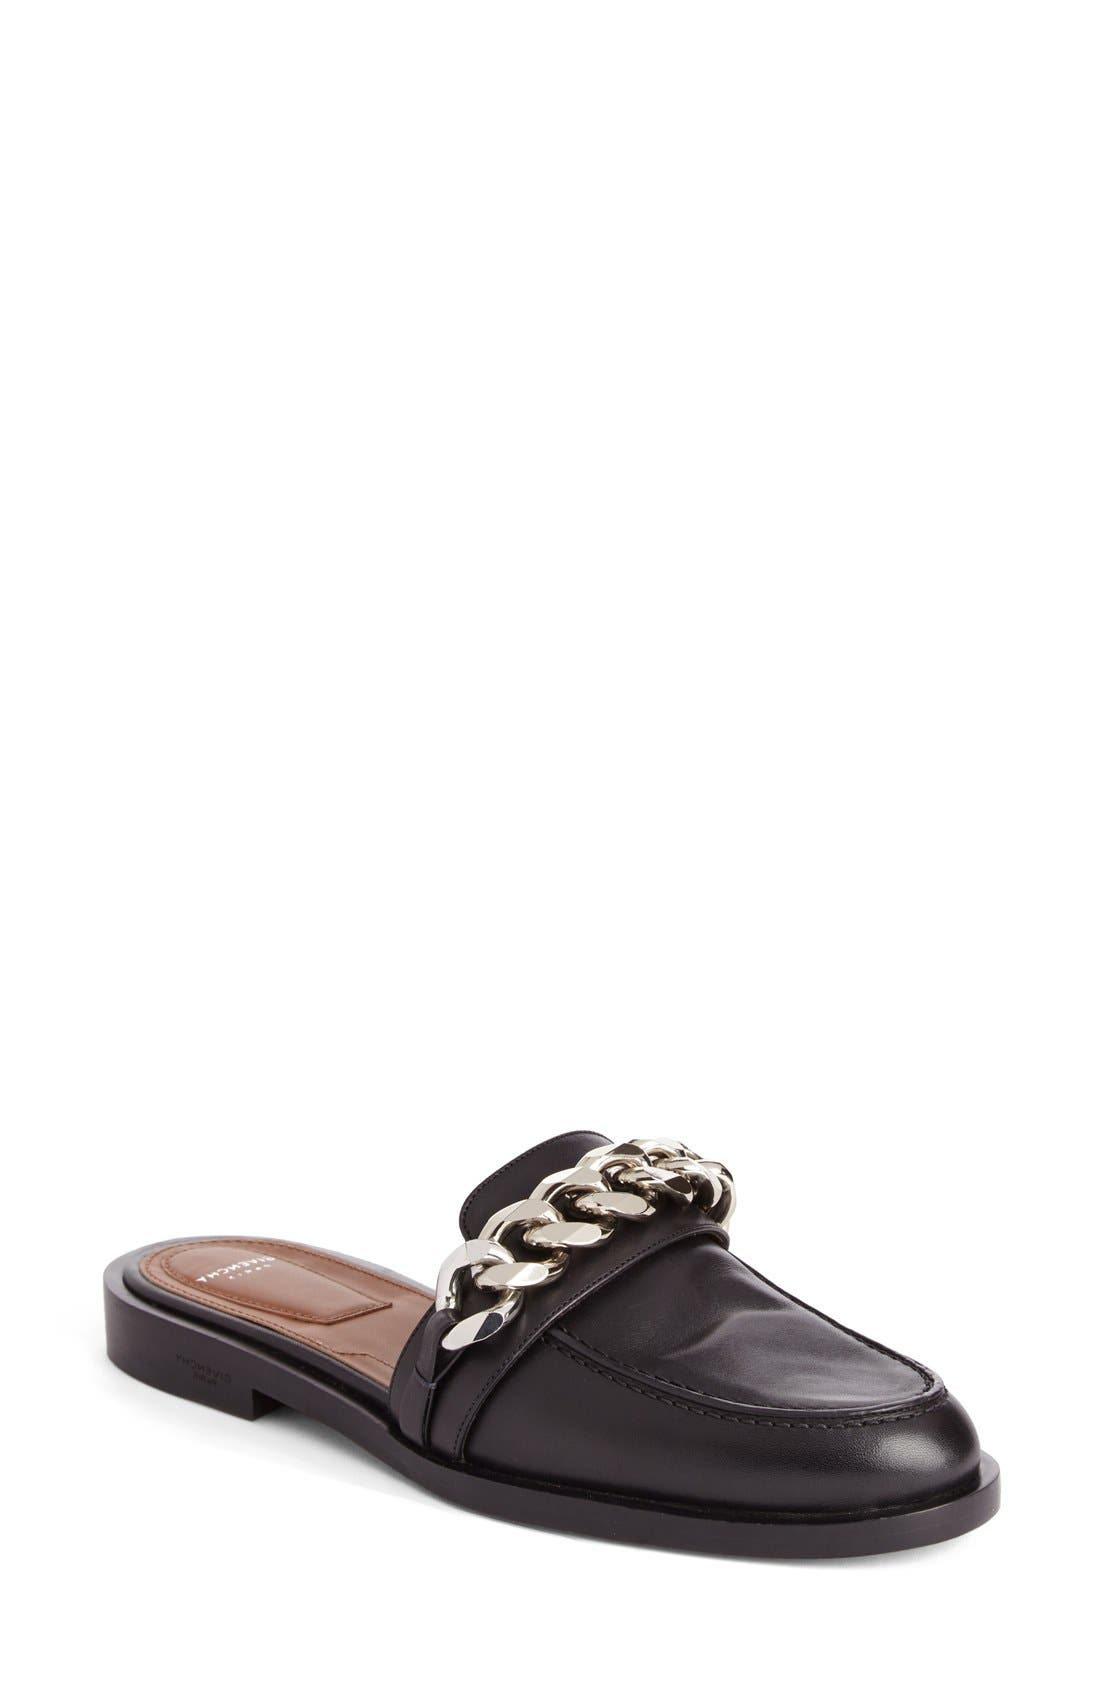 Alternate Image 1 Selected - Givenchy Chain Strap Loafer Mule (Women)